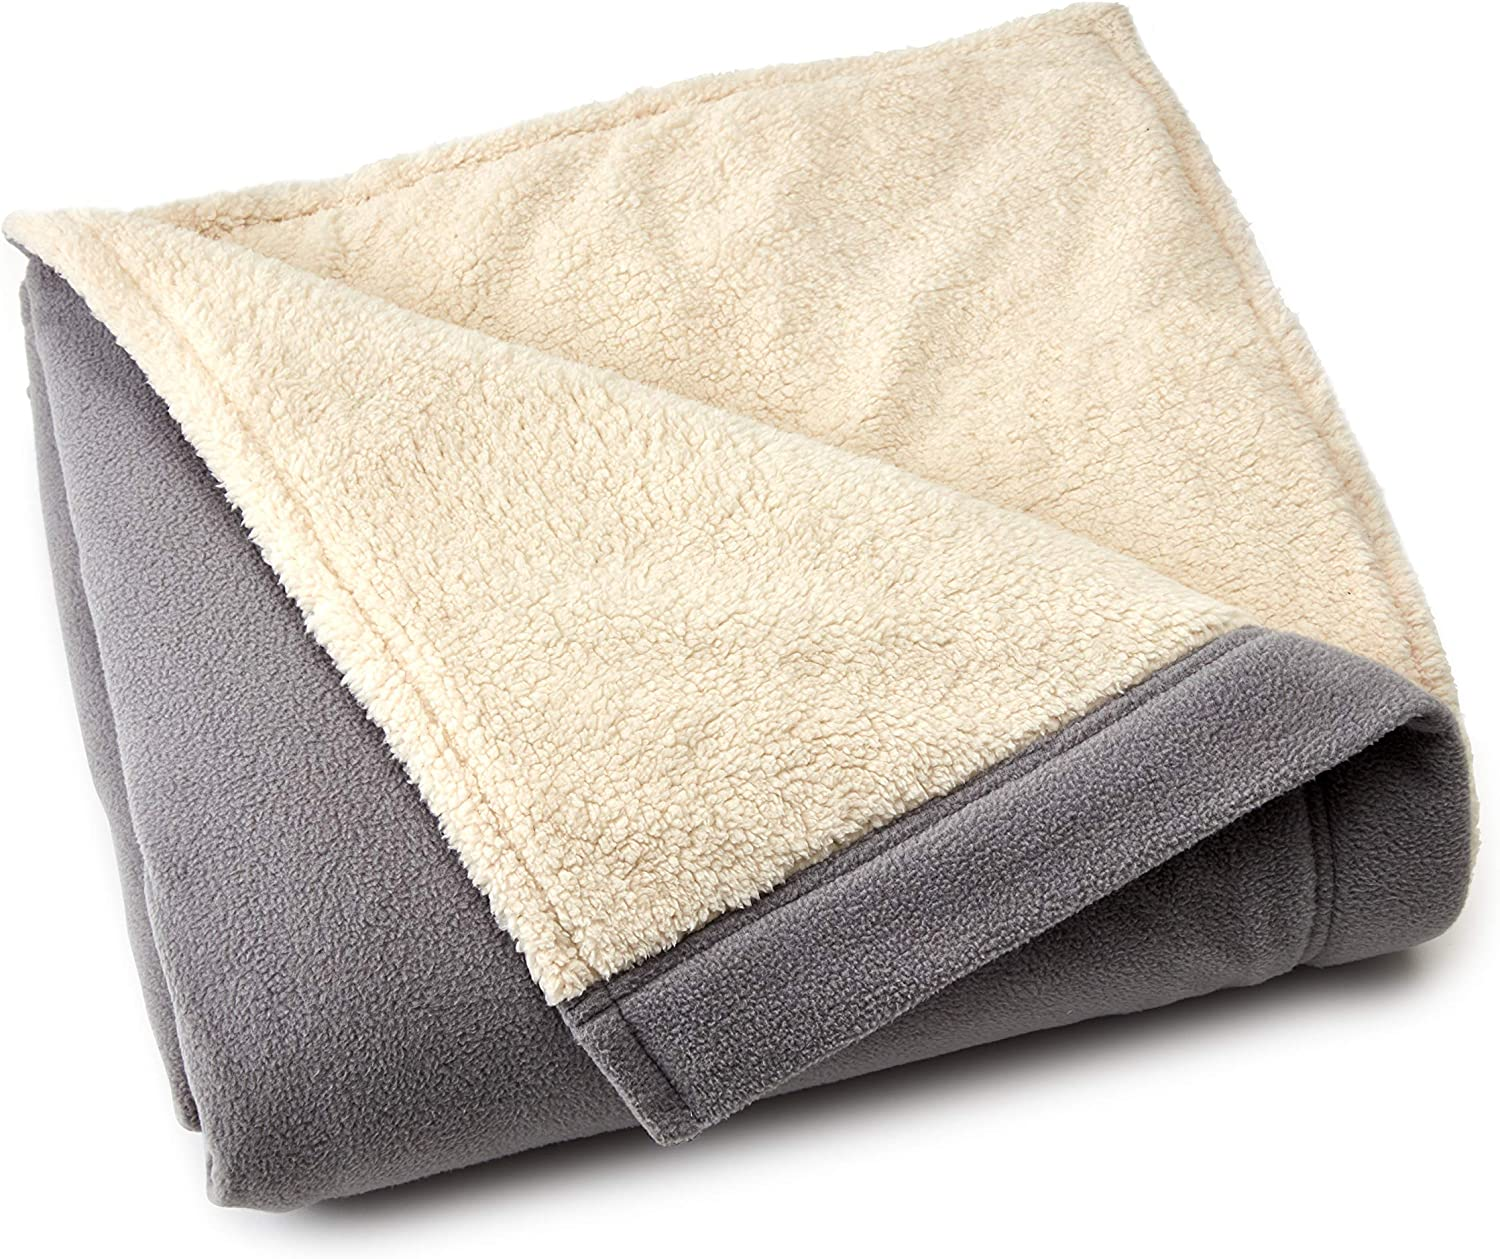 Twin Juniper Eddie Bauer Signature Reversible Fleece//Sherpa Electric Heated Blanket with Safe /& Warm Low-Voltage Technology